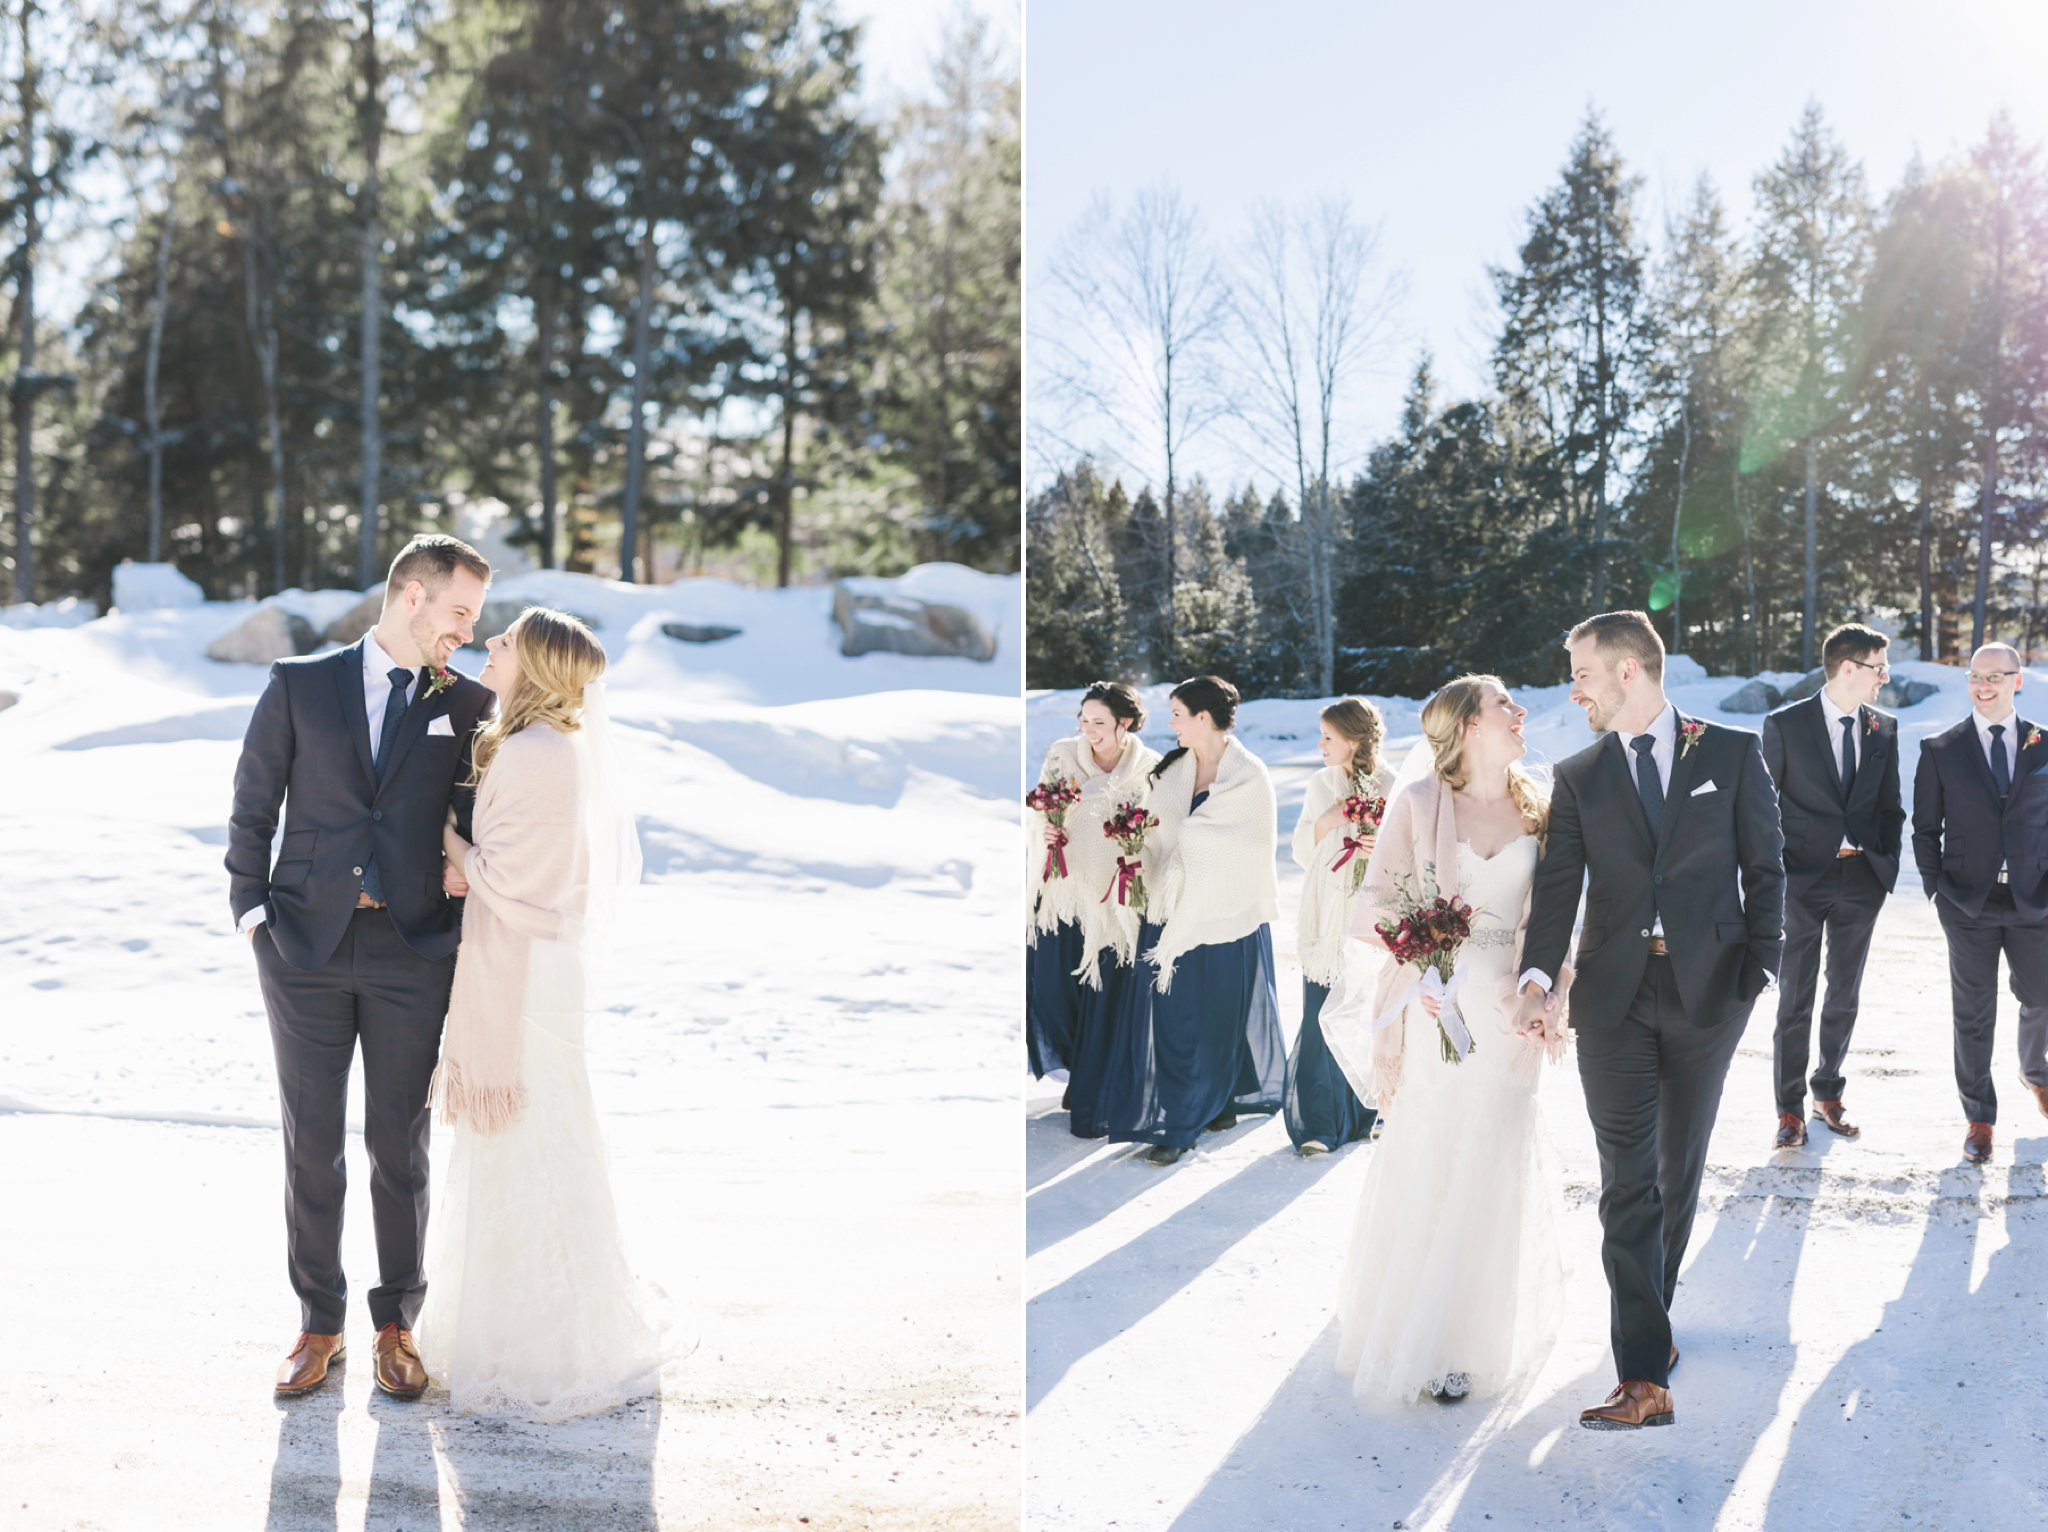 Bridal party photos at the Winter wedding at Le Belvedere